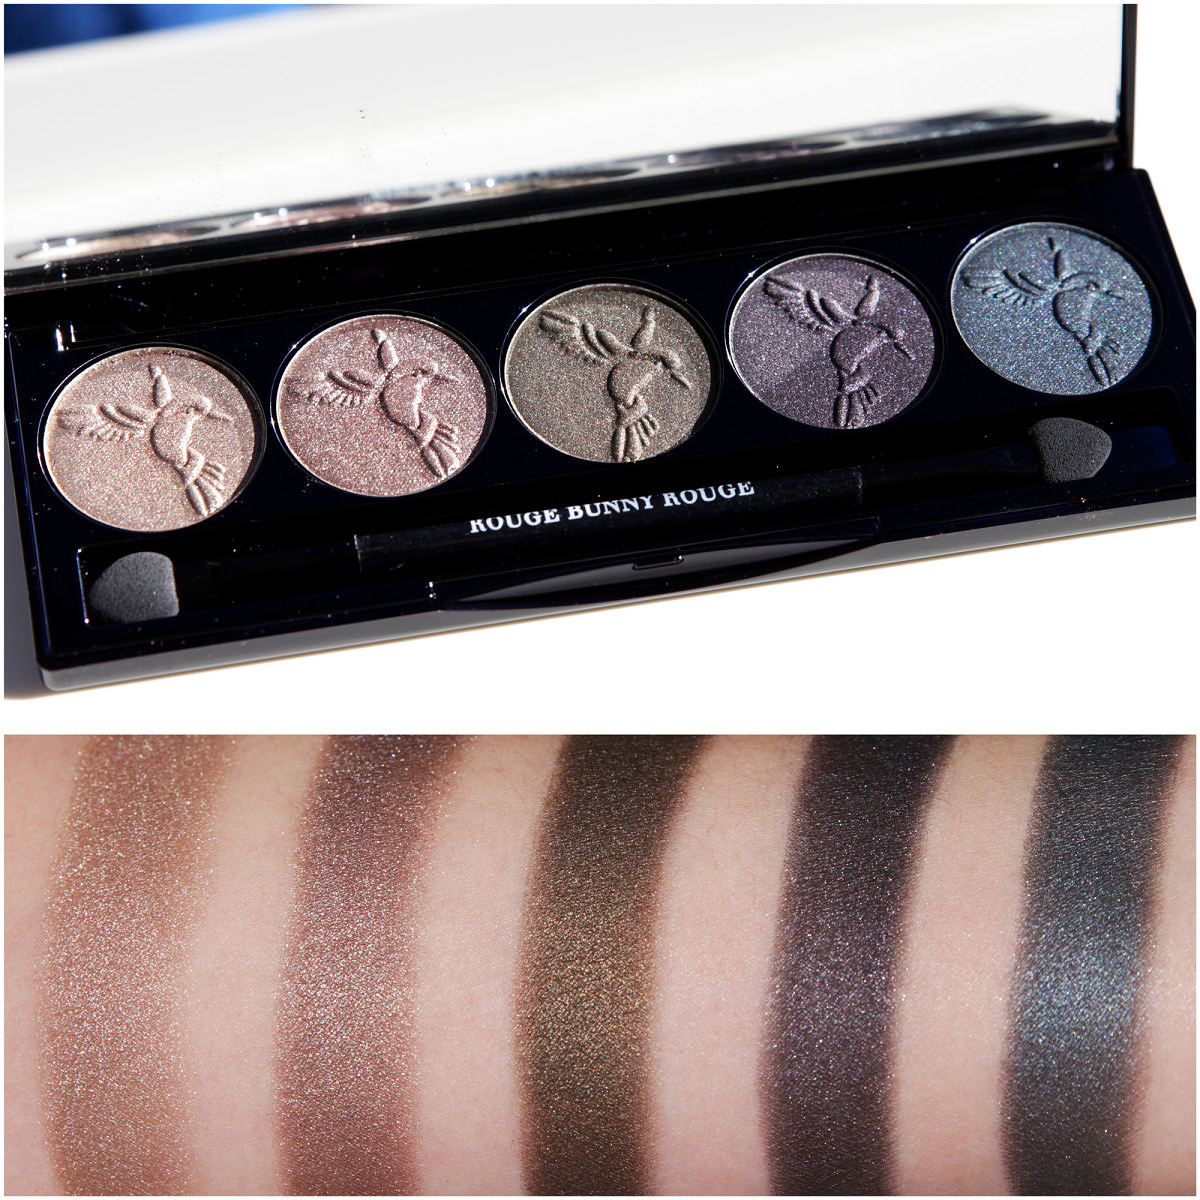 Rouge Bunny Rouge – Chronos Eye Shadow Palette